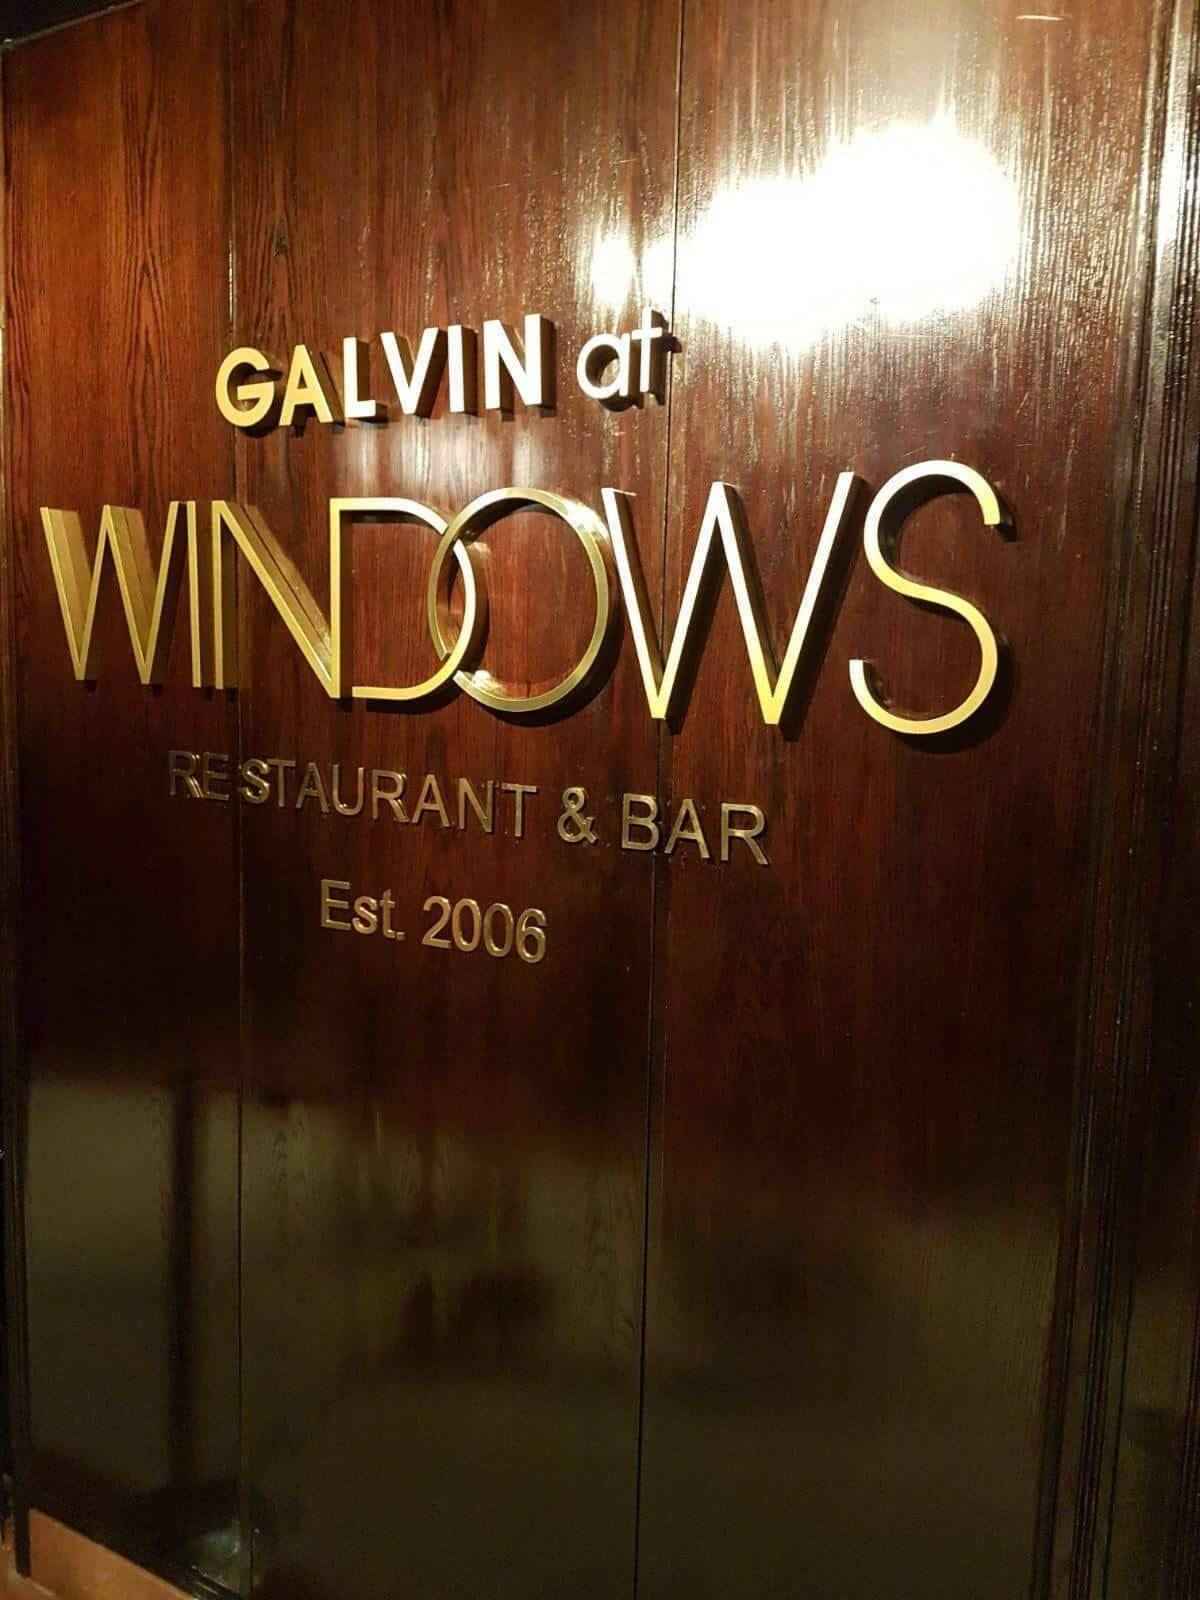 Taking dining to new heights - Galvin at Windows